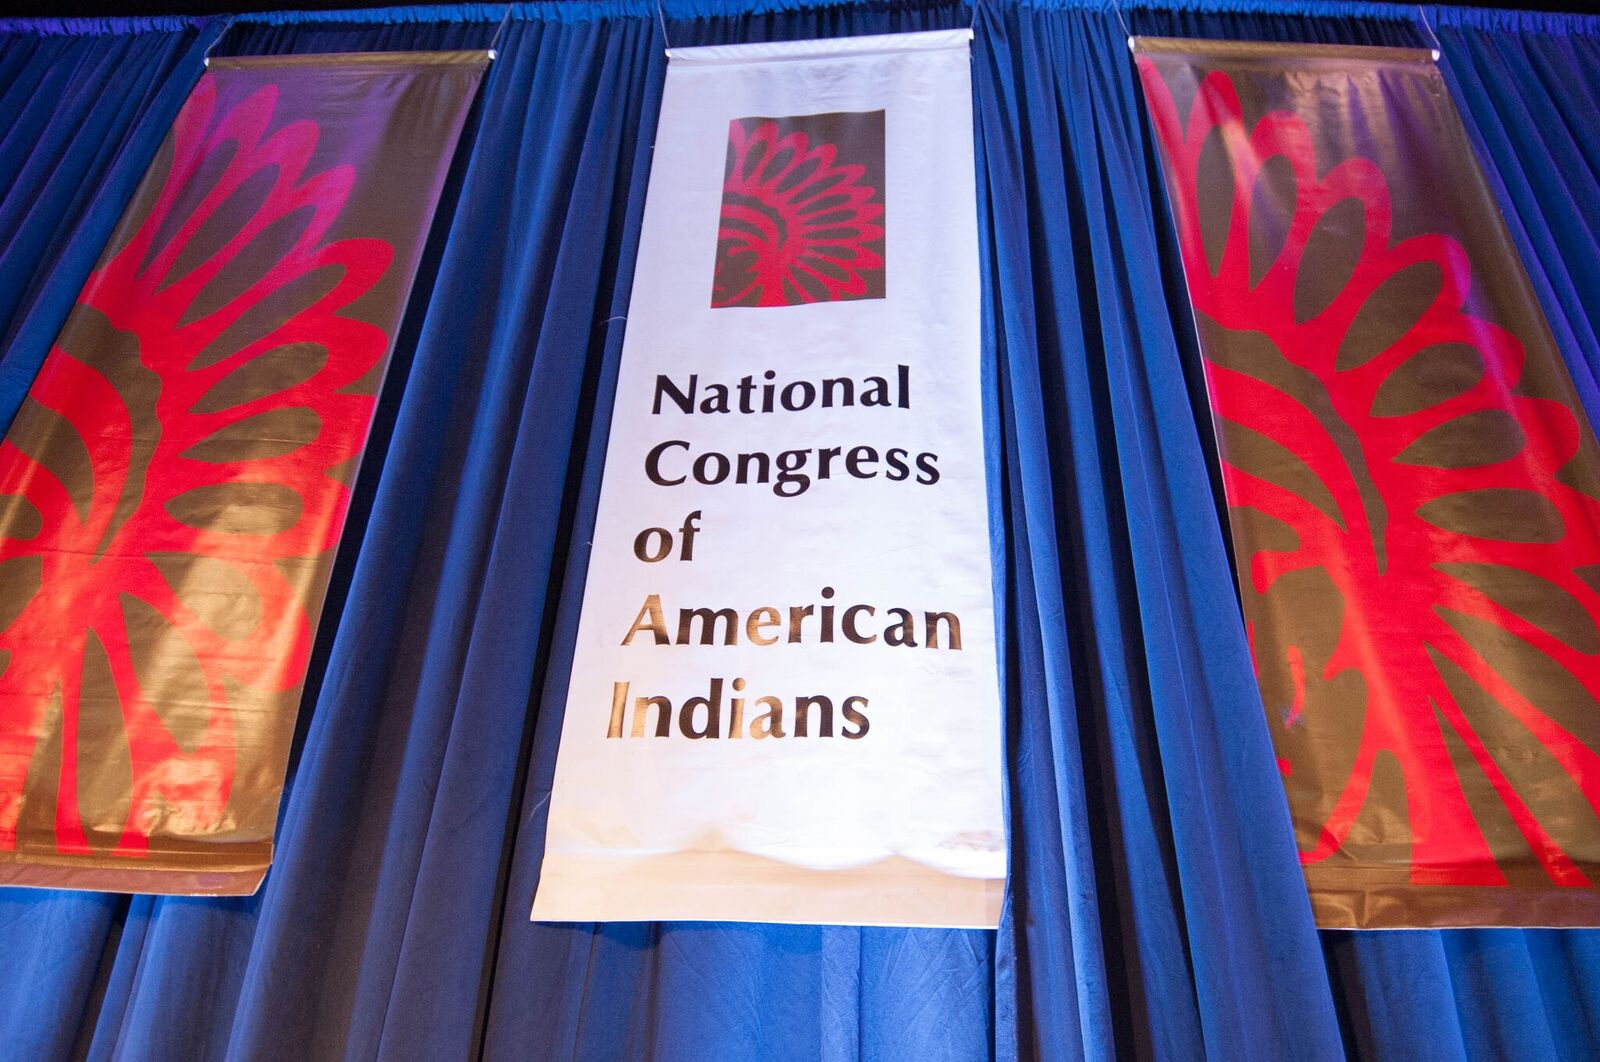 Judge rejects lawsuit from former attorney at National Congress of American Indians